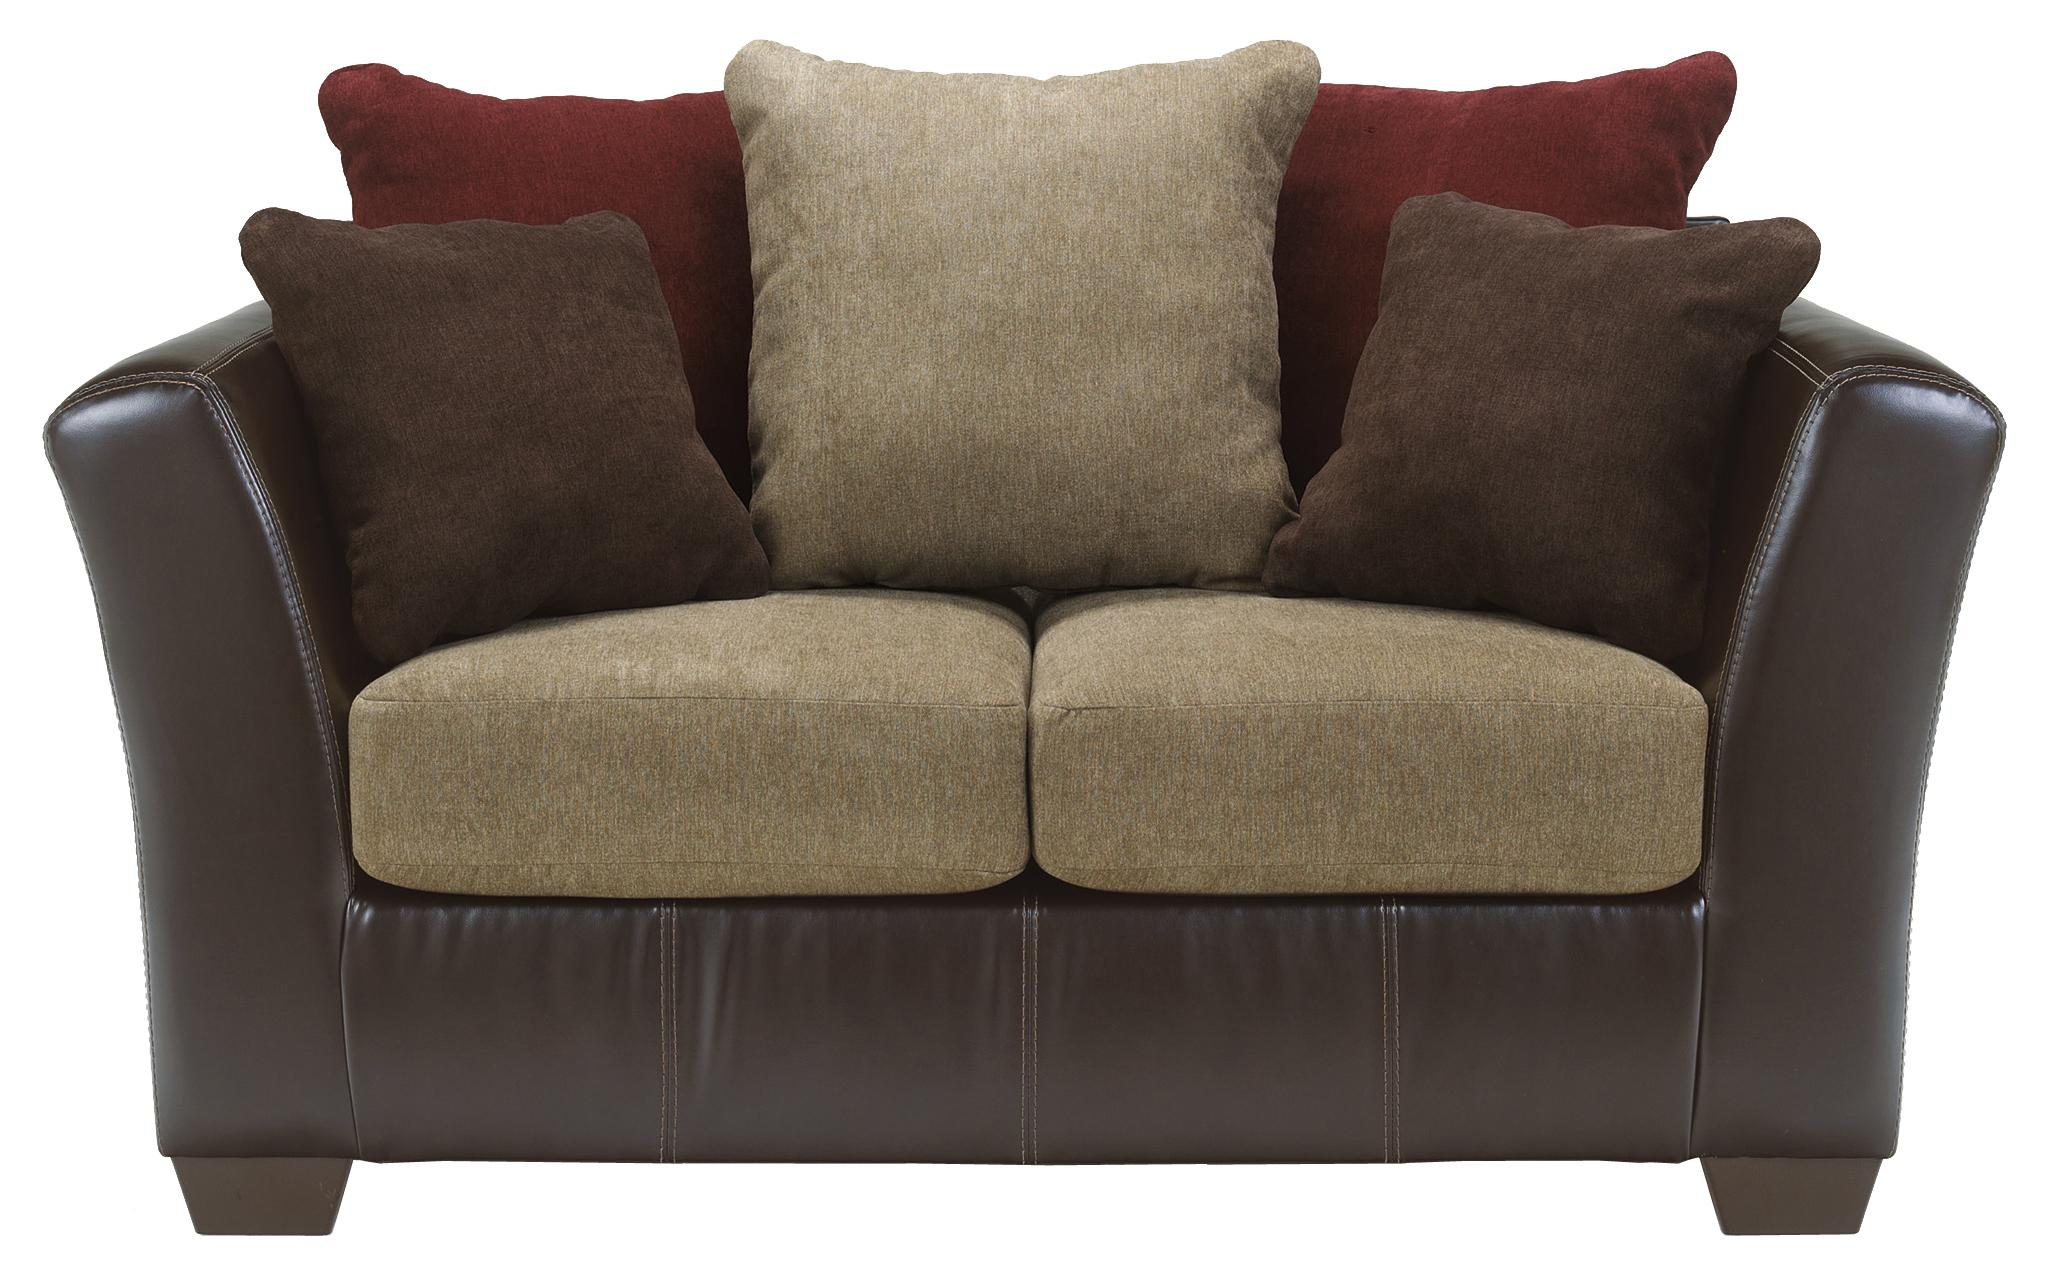 Ashley Furniture Sanya - Mocha Loveseat - Item Number: 2840035